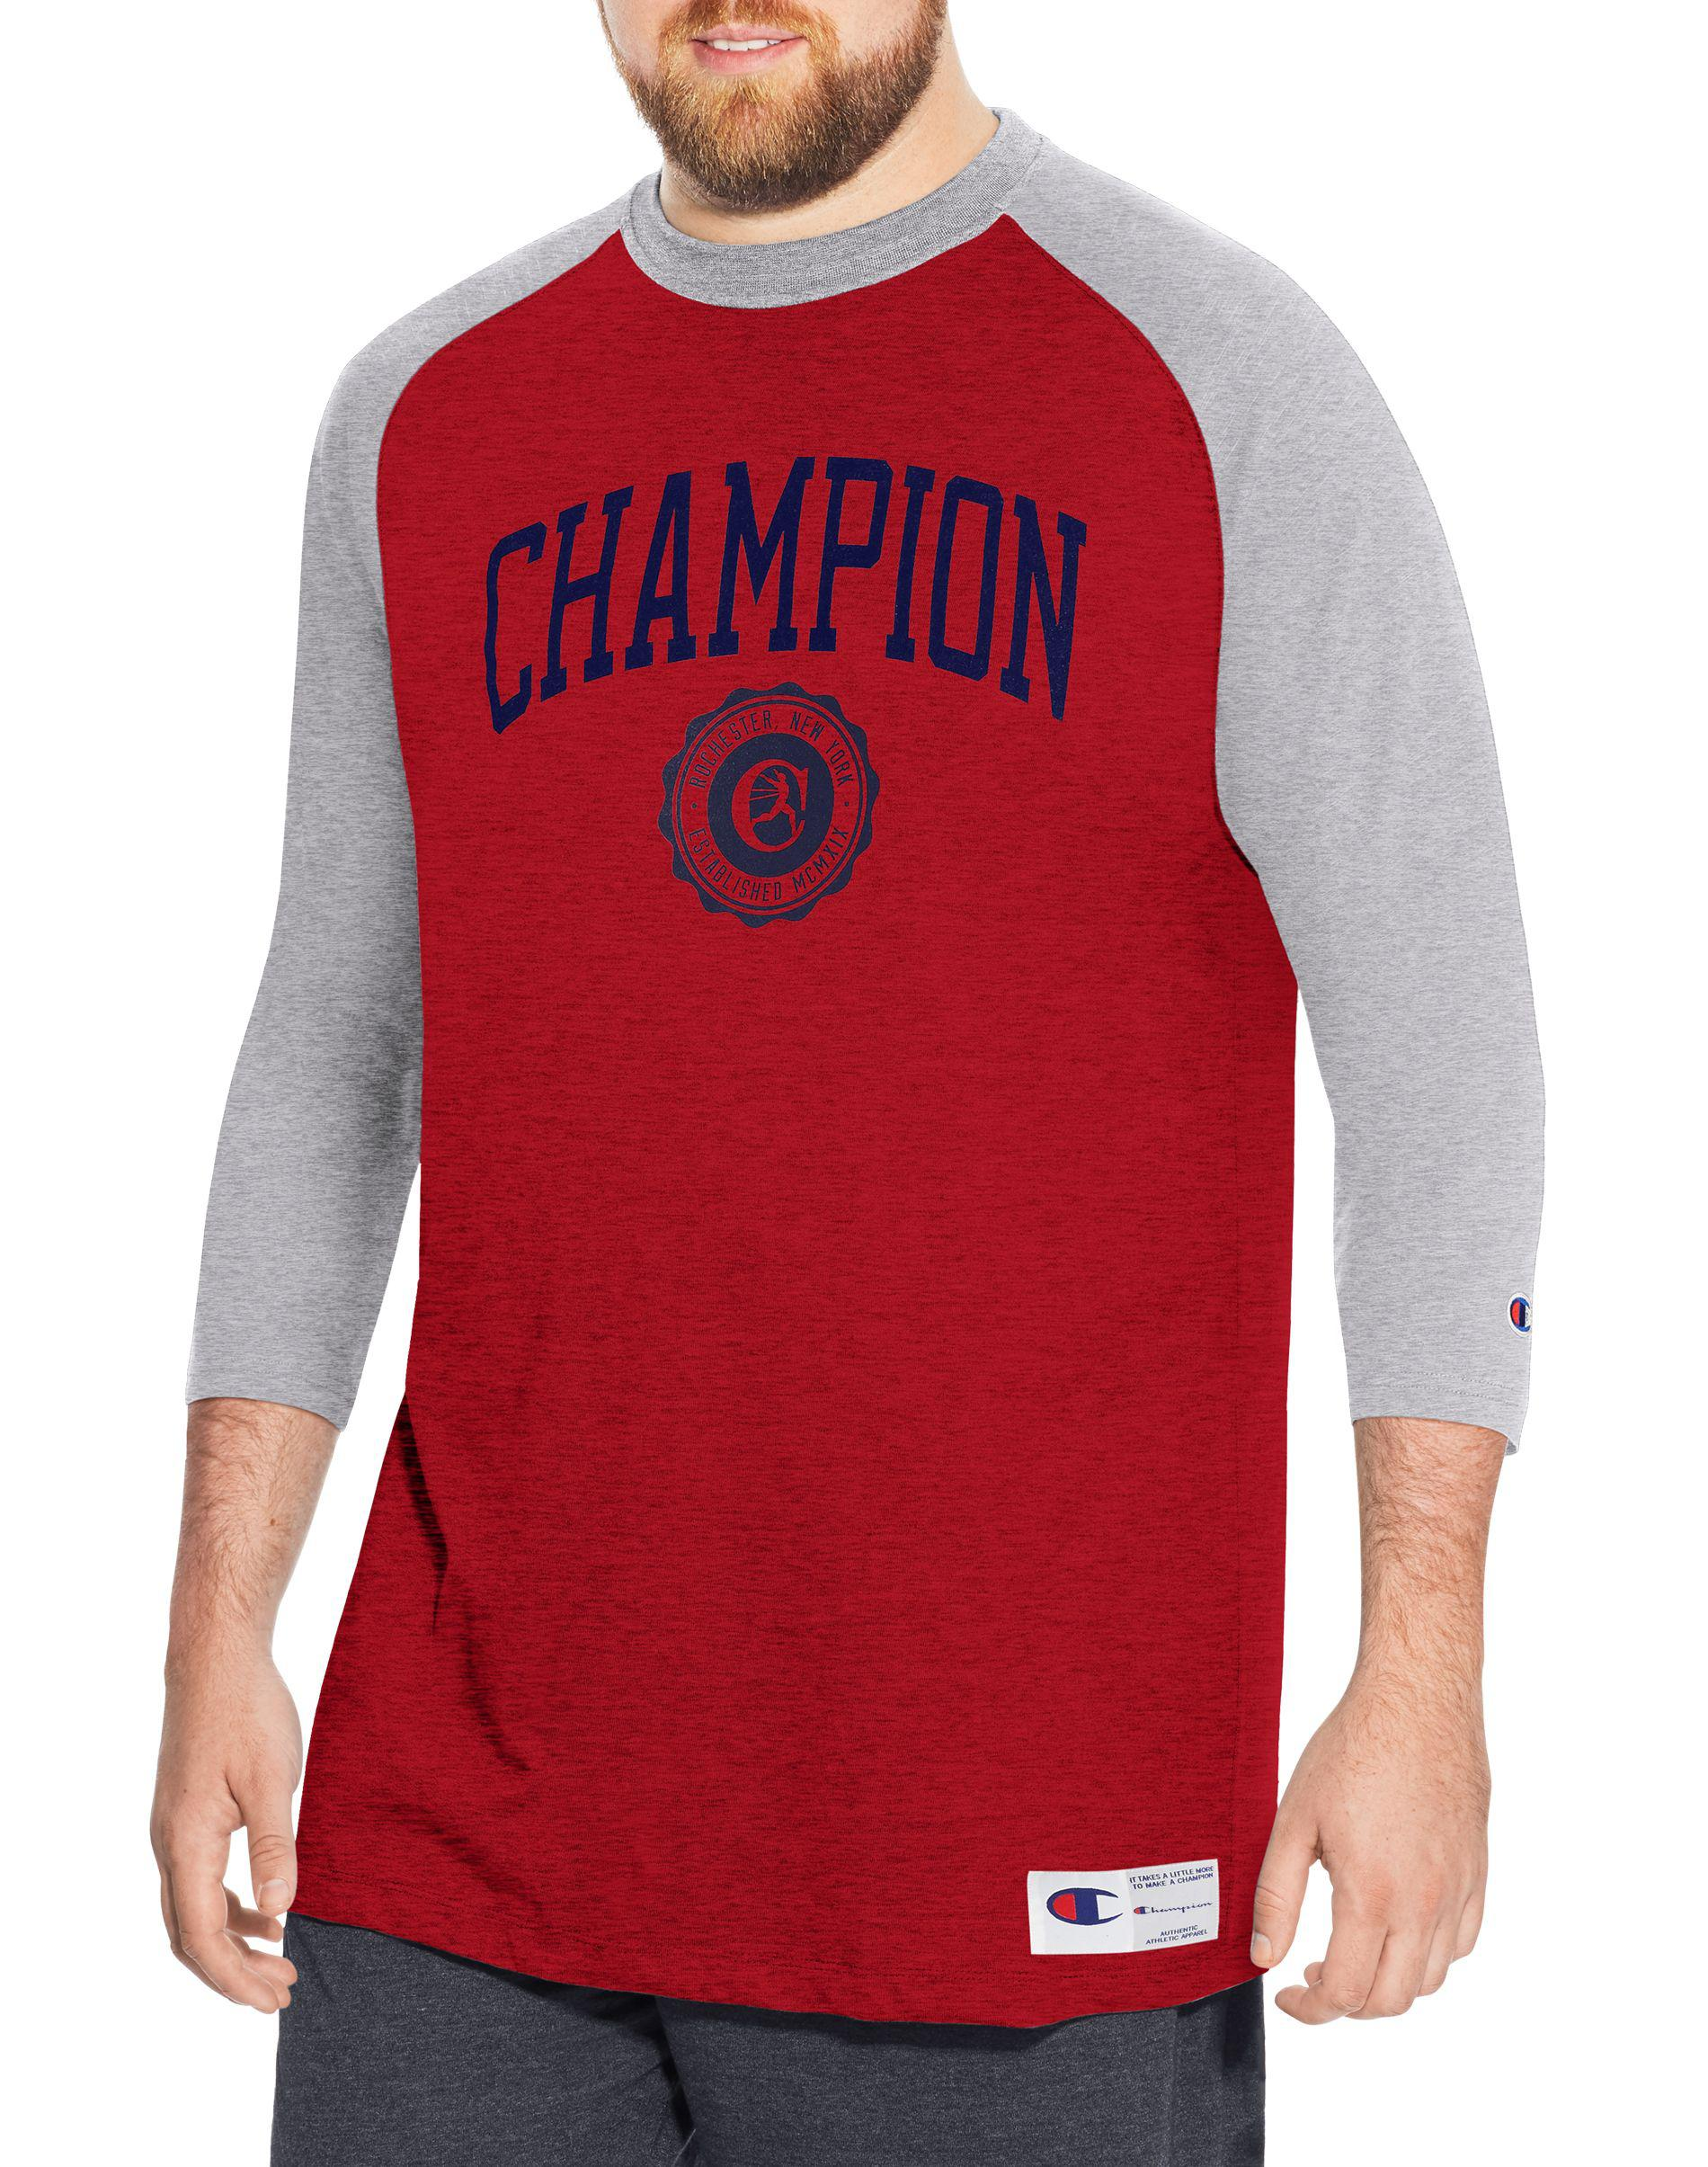 ef8fed999 Champion - Red Heritage Big   Tall Baseball Slub Tee for Men - Lyst. View  fullscreen